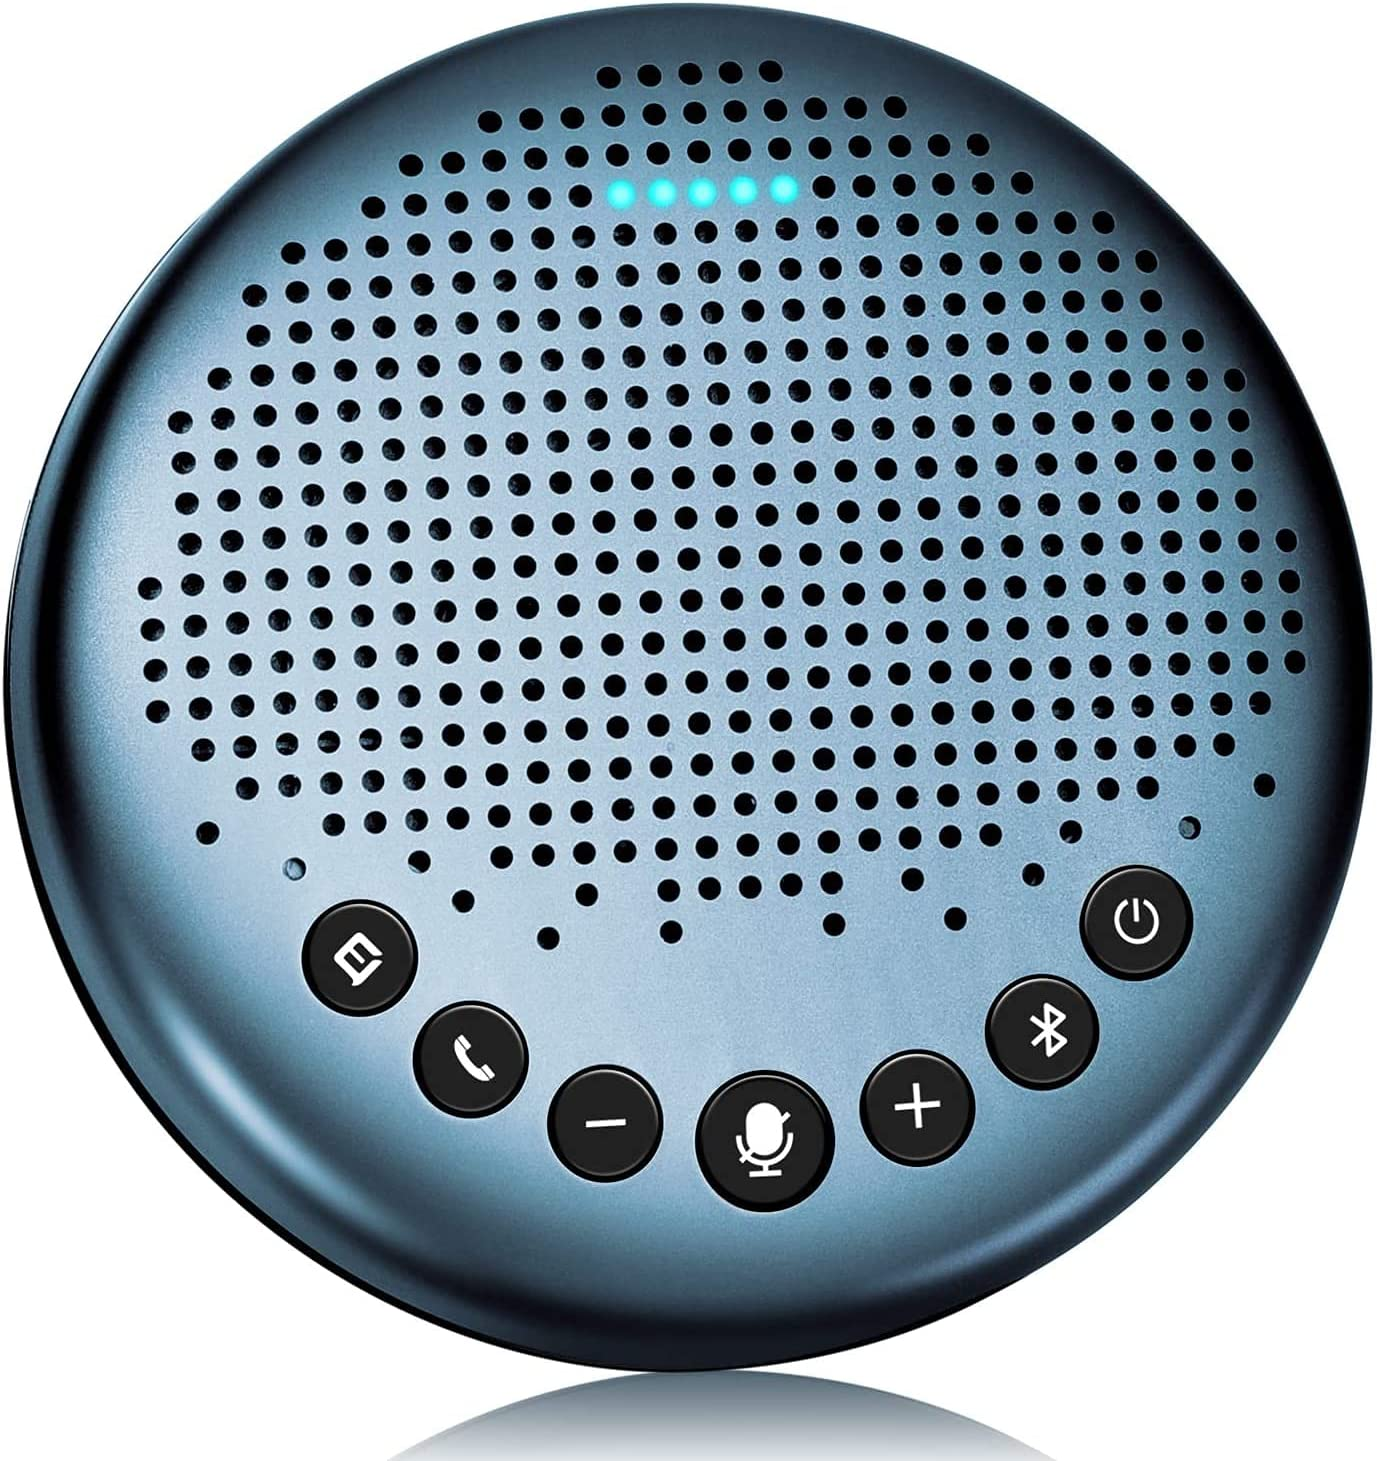 Bluetooth Speakerphone - Luna Lite Computer Speakers with Microphone, VoiceIA Noise Cancelling USB Speakerphone, Daisy Chain, Conference Microphone 360° Voice Pickup for 8 People Skype for Business